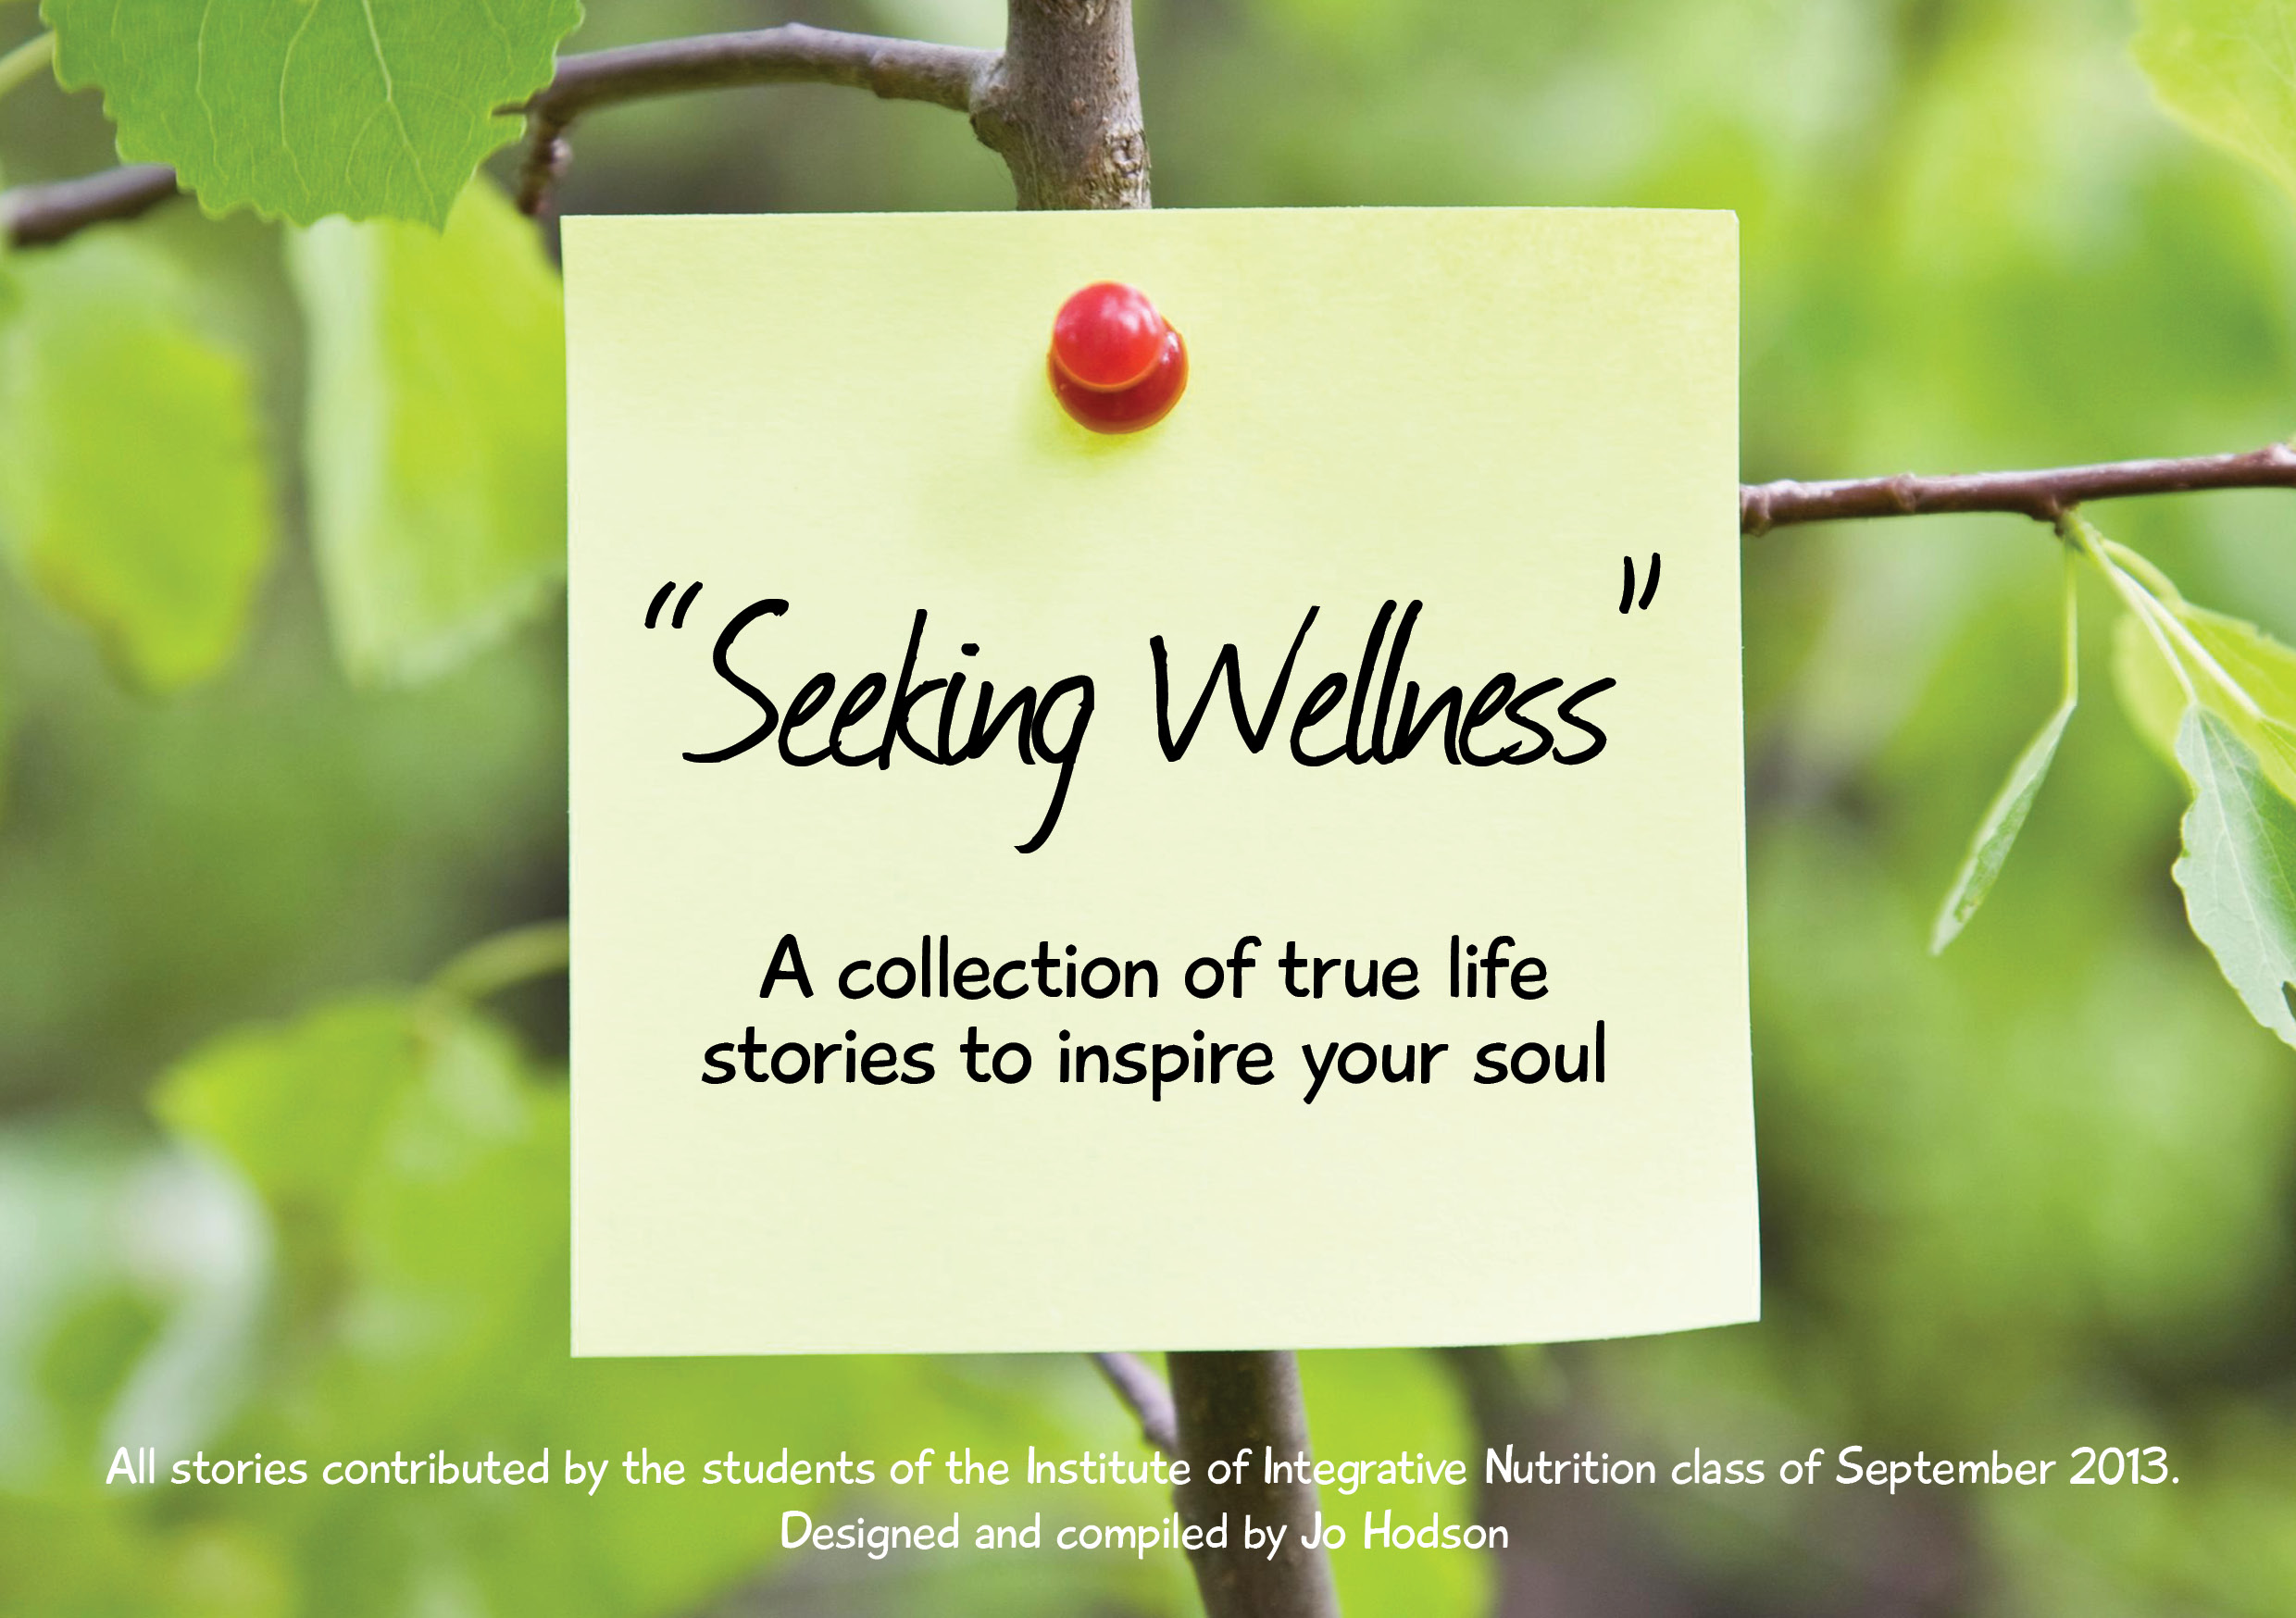 Seeking Wellness - A collection true stories to inspire you soul. A collaboration by the graduates of The Institute of Integrative Nutrition 2013.